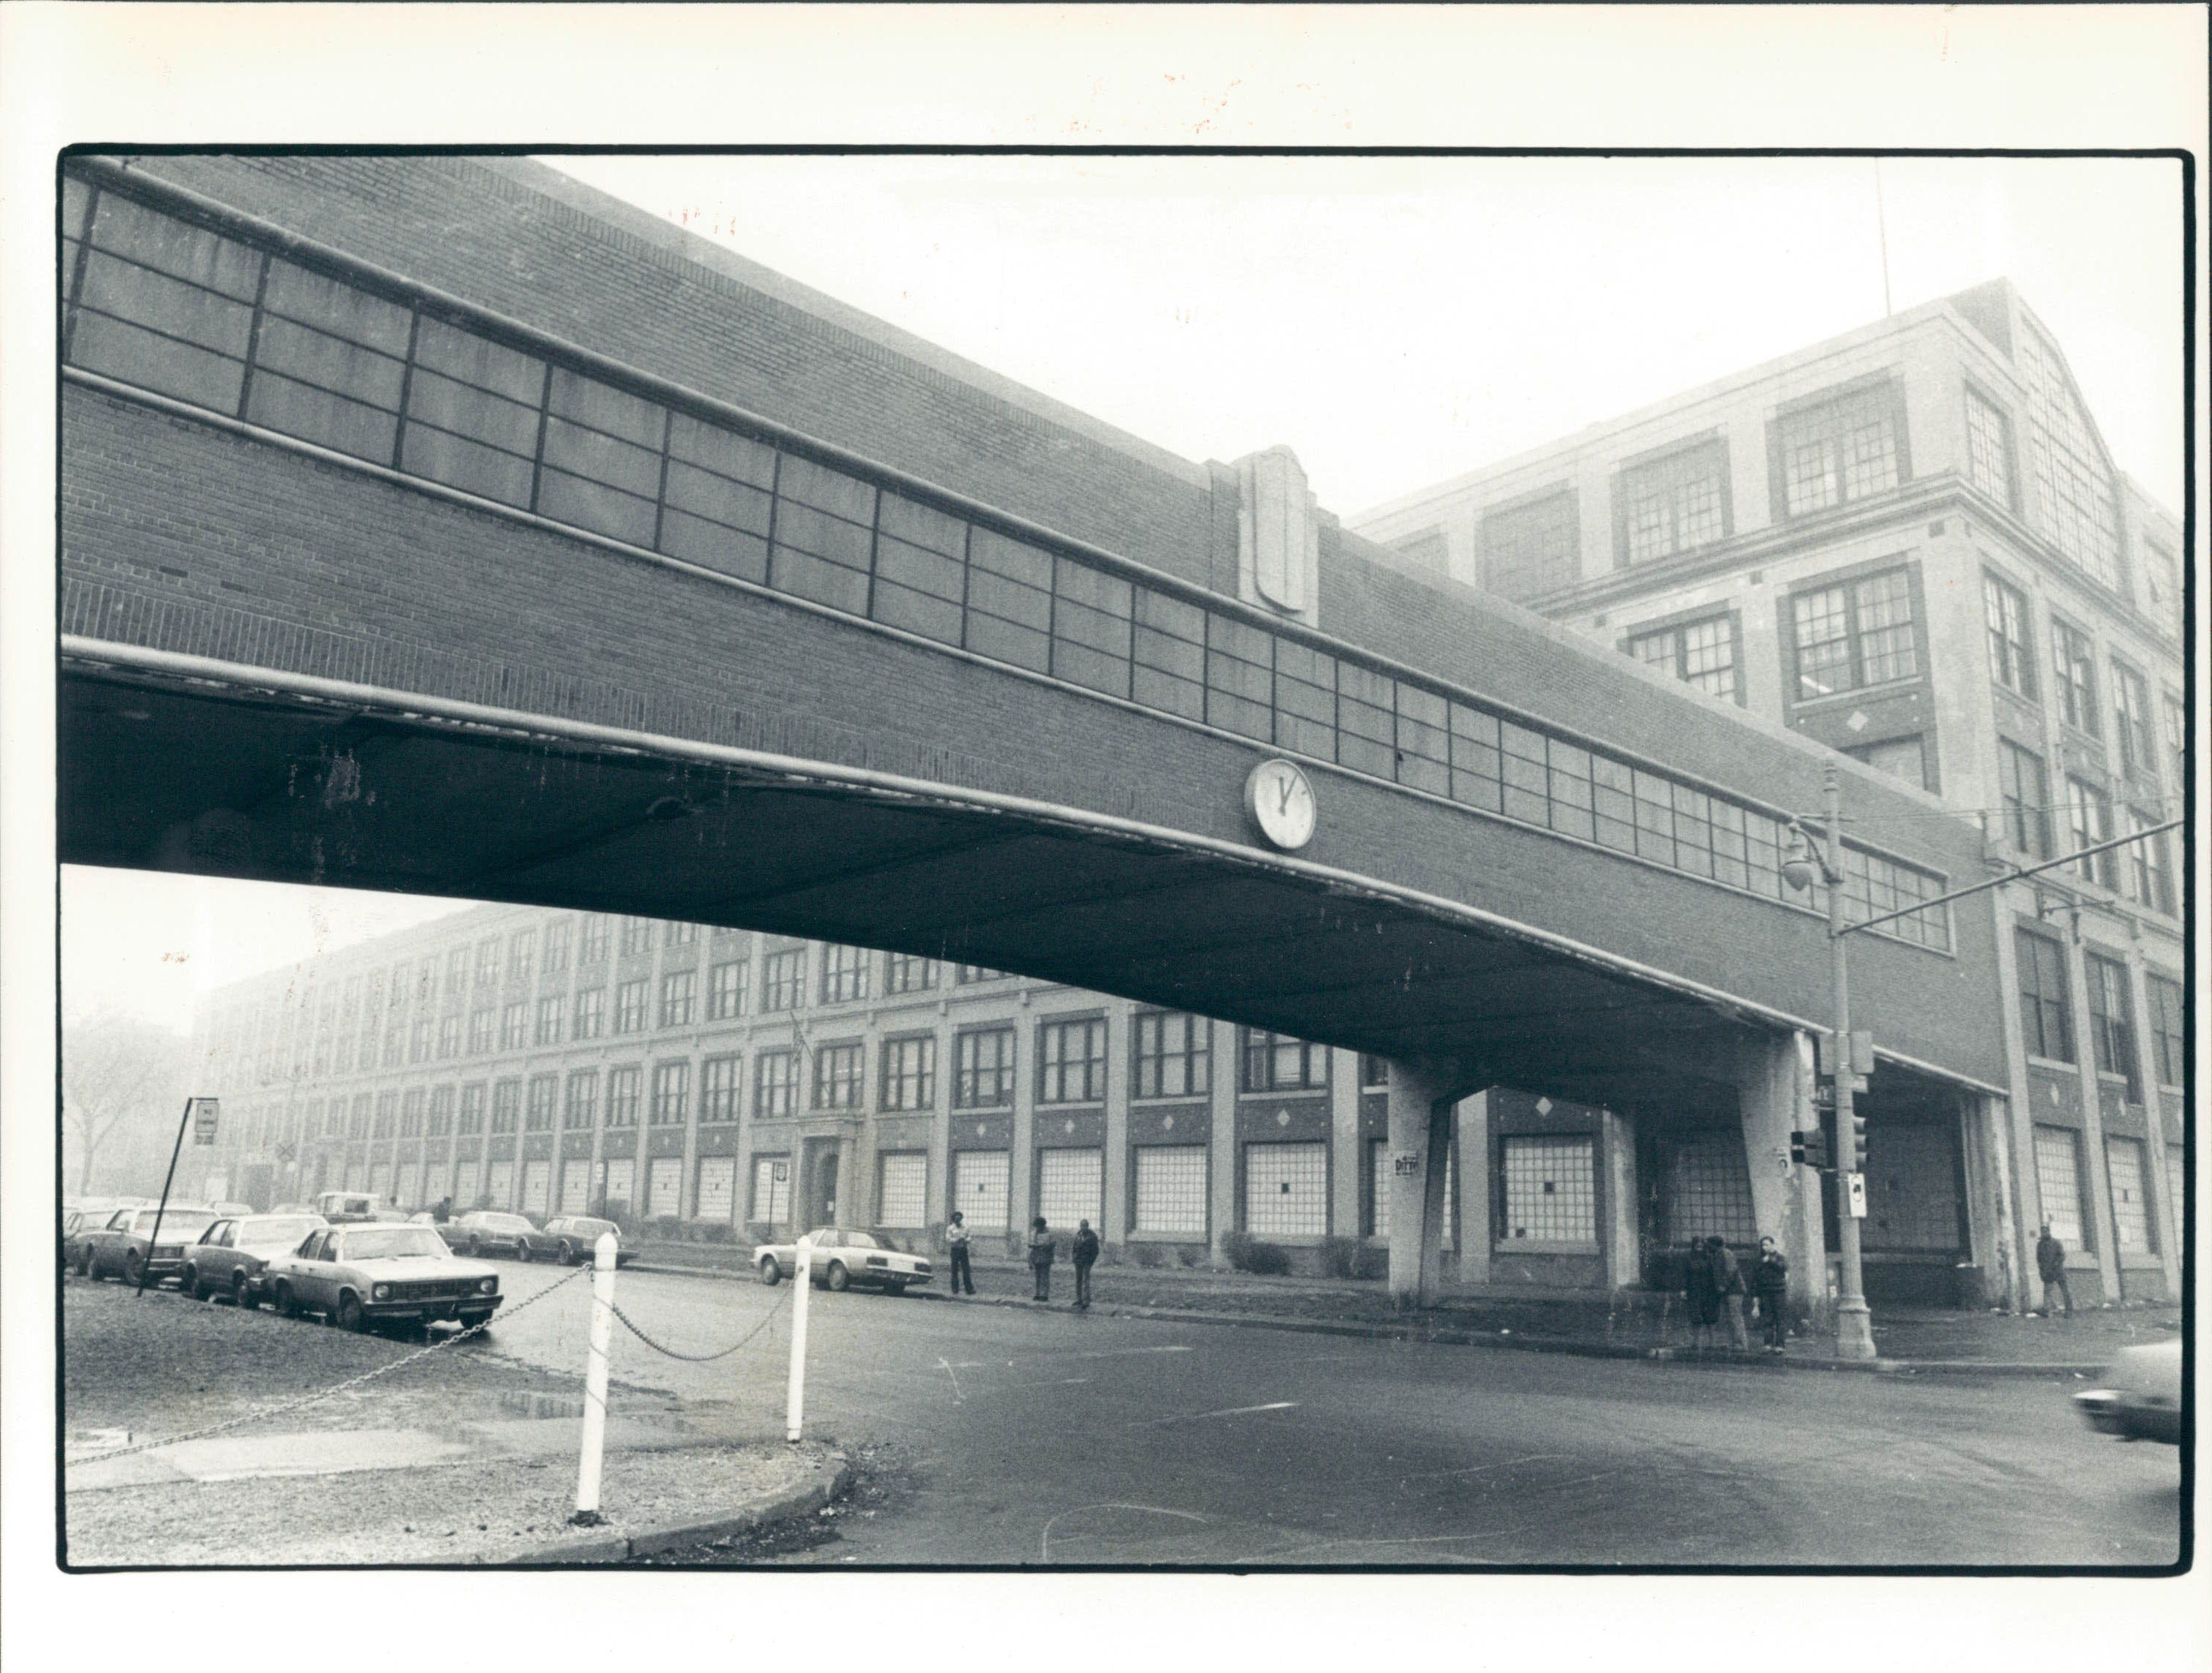 A 1981 photo shows the bridge at the old Packard Motor Car Co. facility .